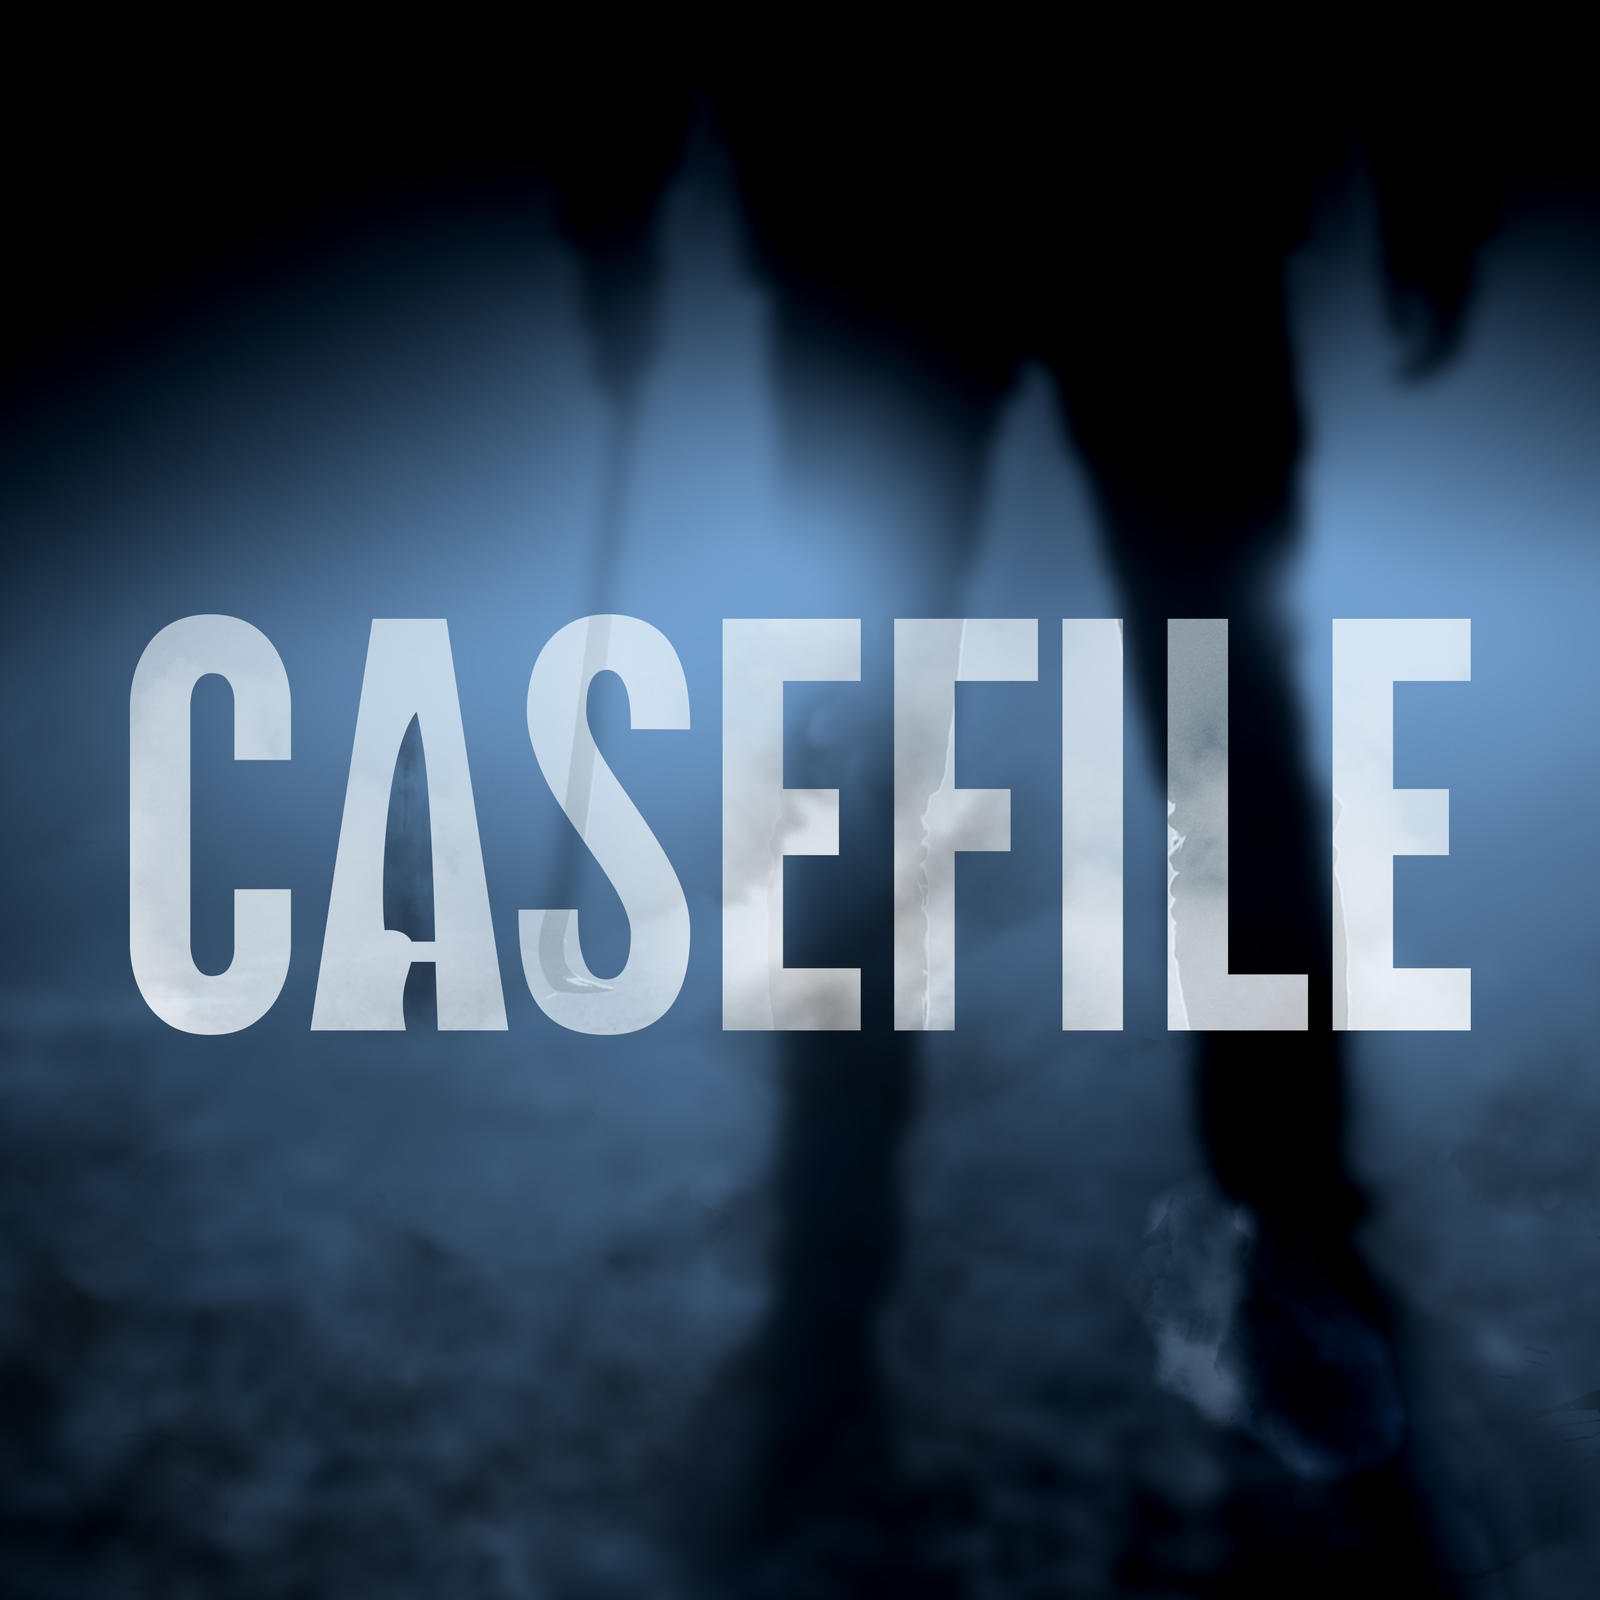 True crime podcasts, Casefile podcast logo